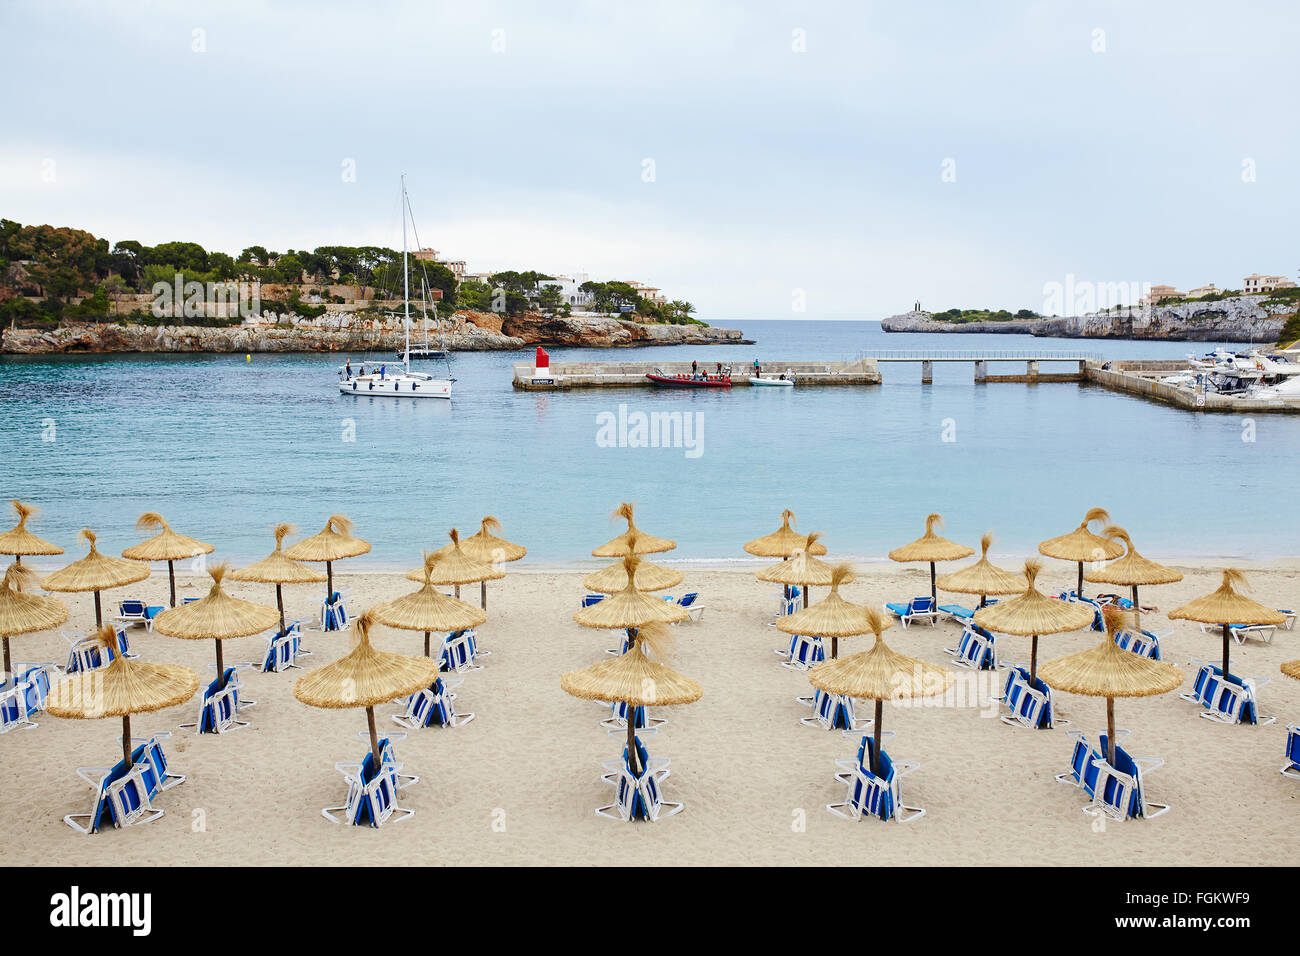 Group of umbrellas and sunloungers - Stock Image